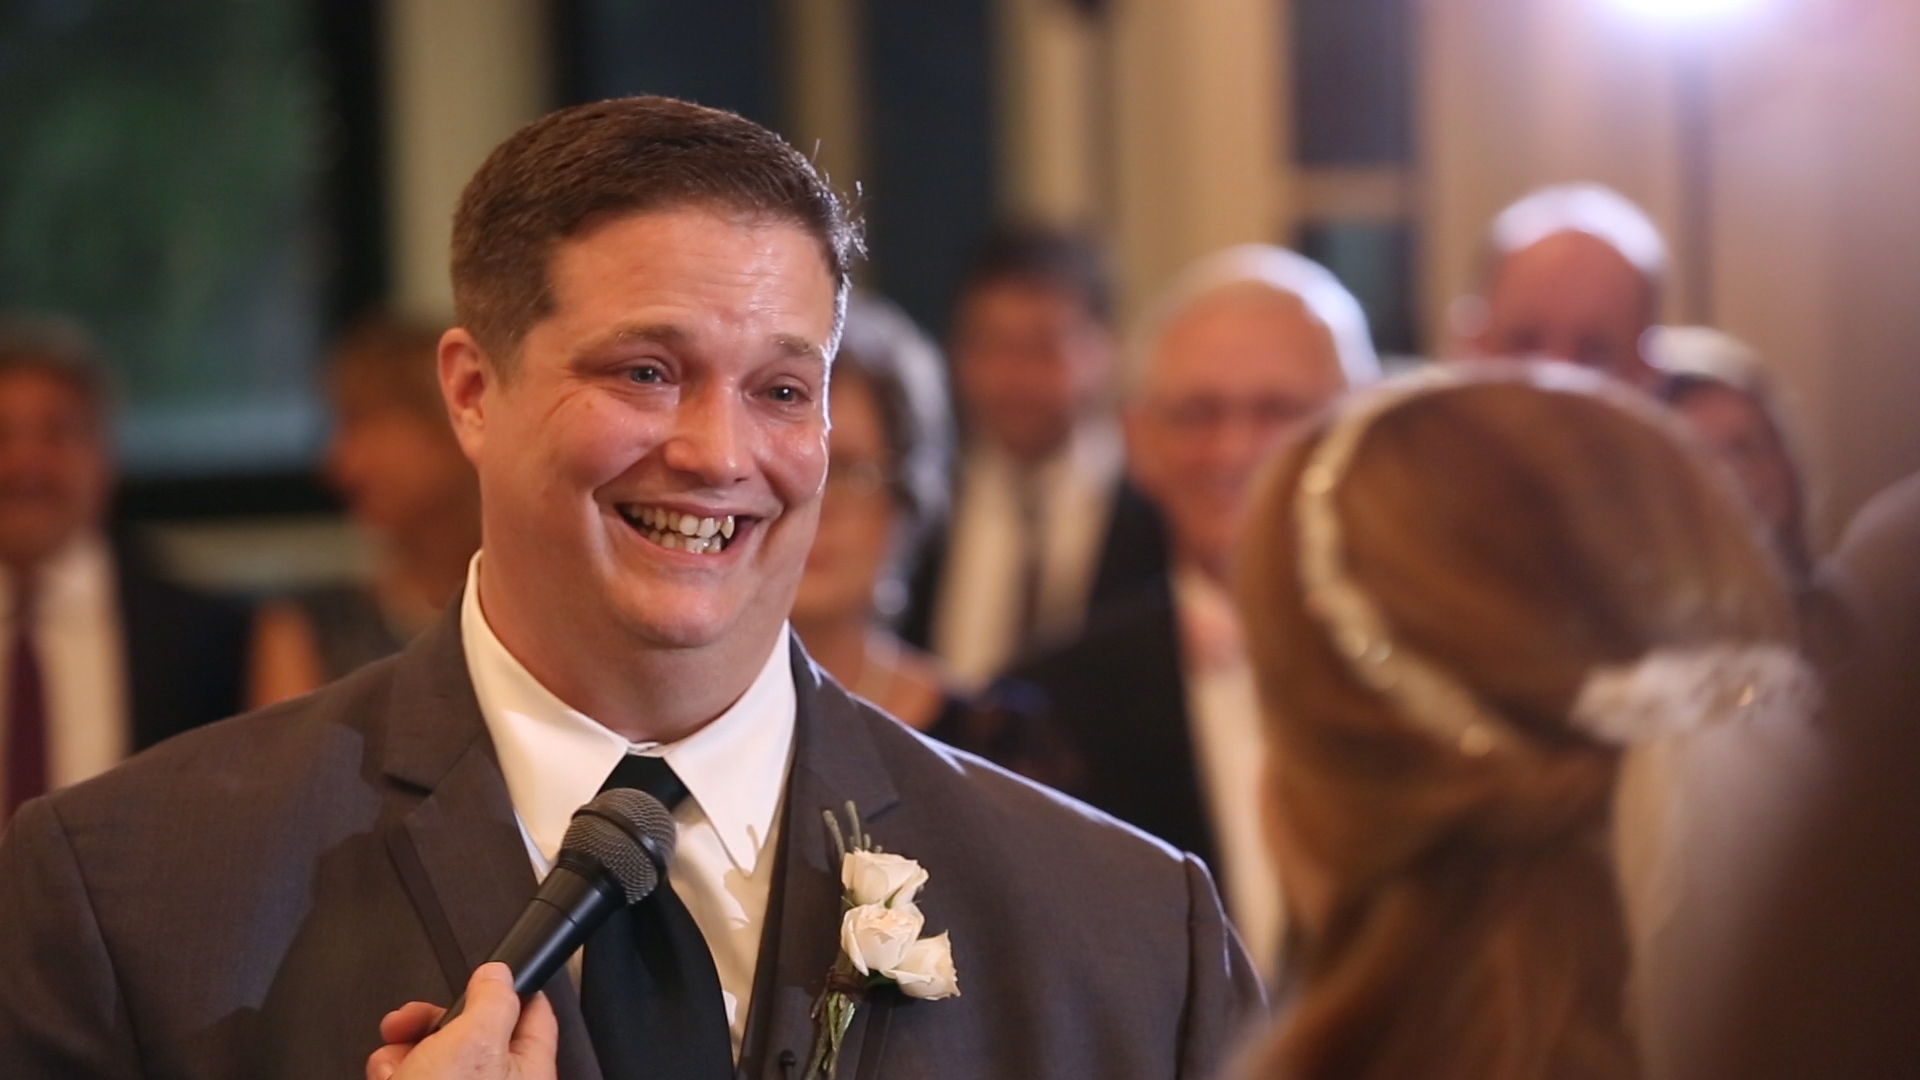 Lauren made Scott laugh and cry with her vows!